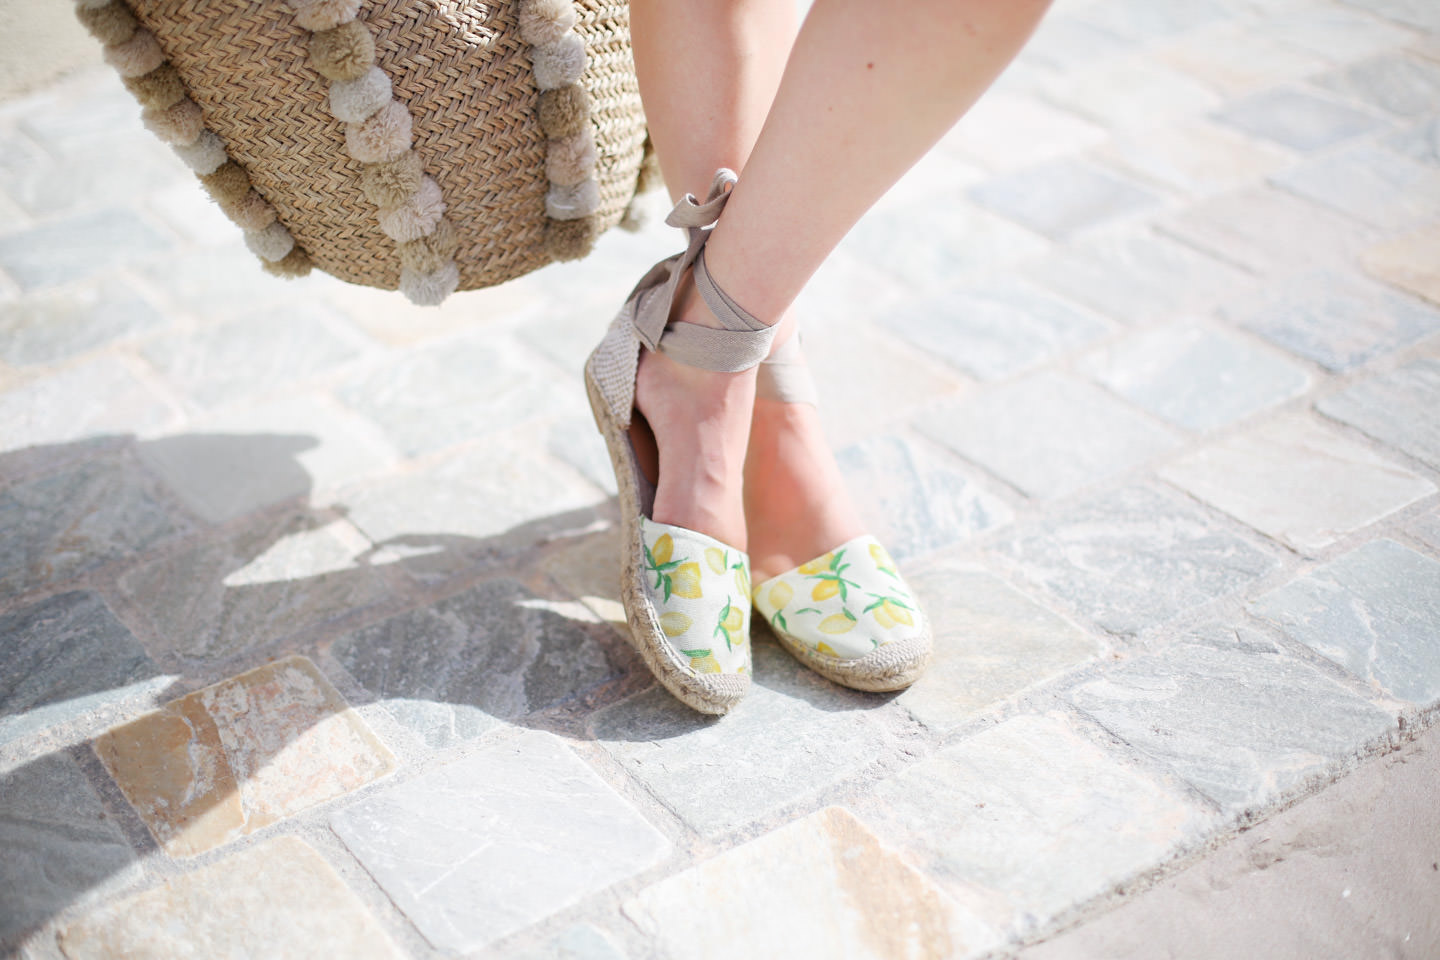 Blog-Mode-And-The-City-Looks-Les-Pieds-Dans-Le-Sable-A-Calvi-6